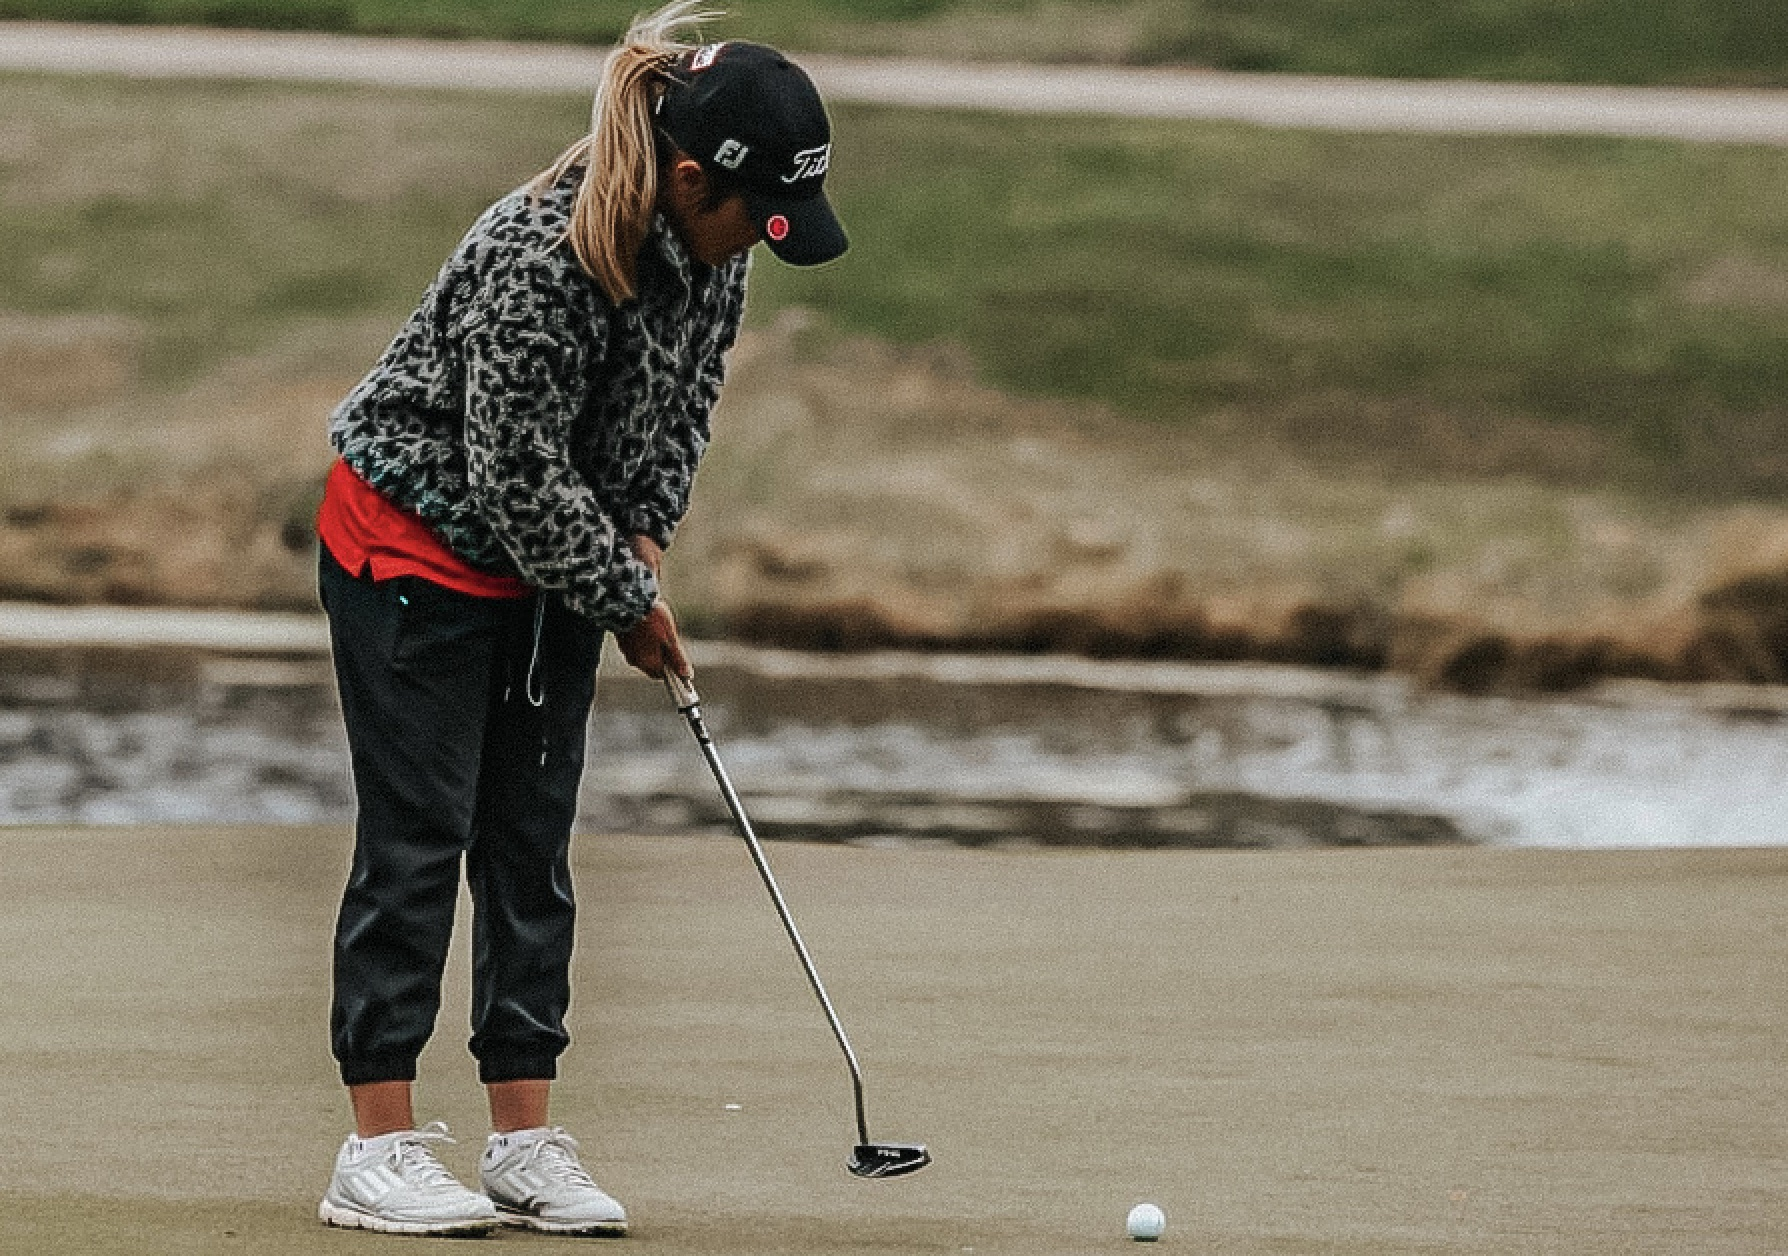 Charleston girls golf 'in position' to repeat as Apollo champions